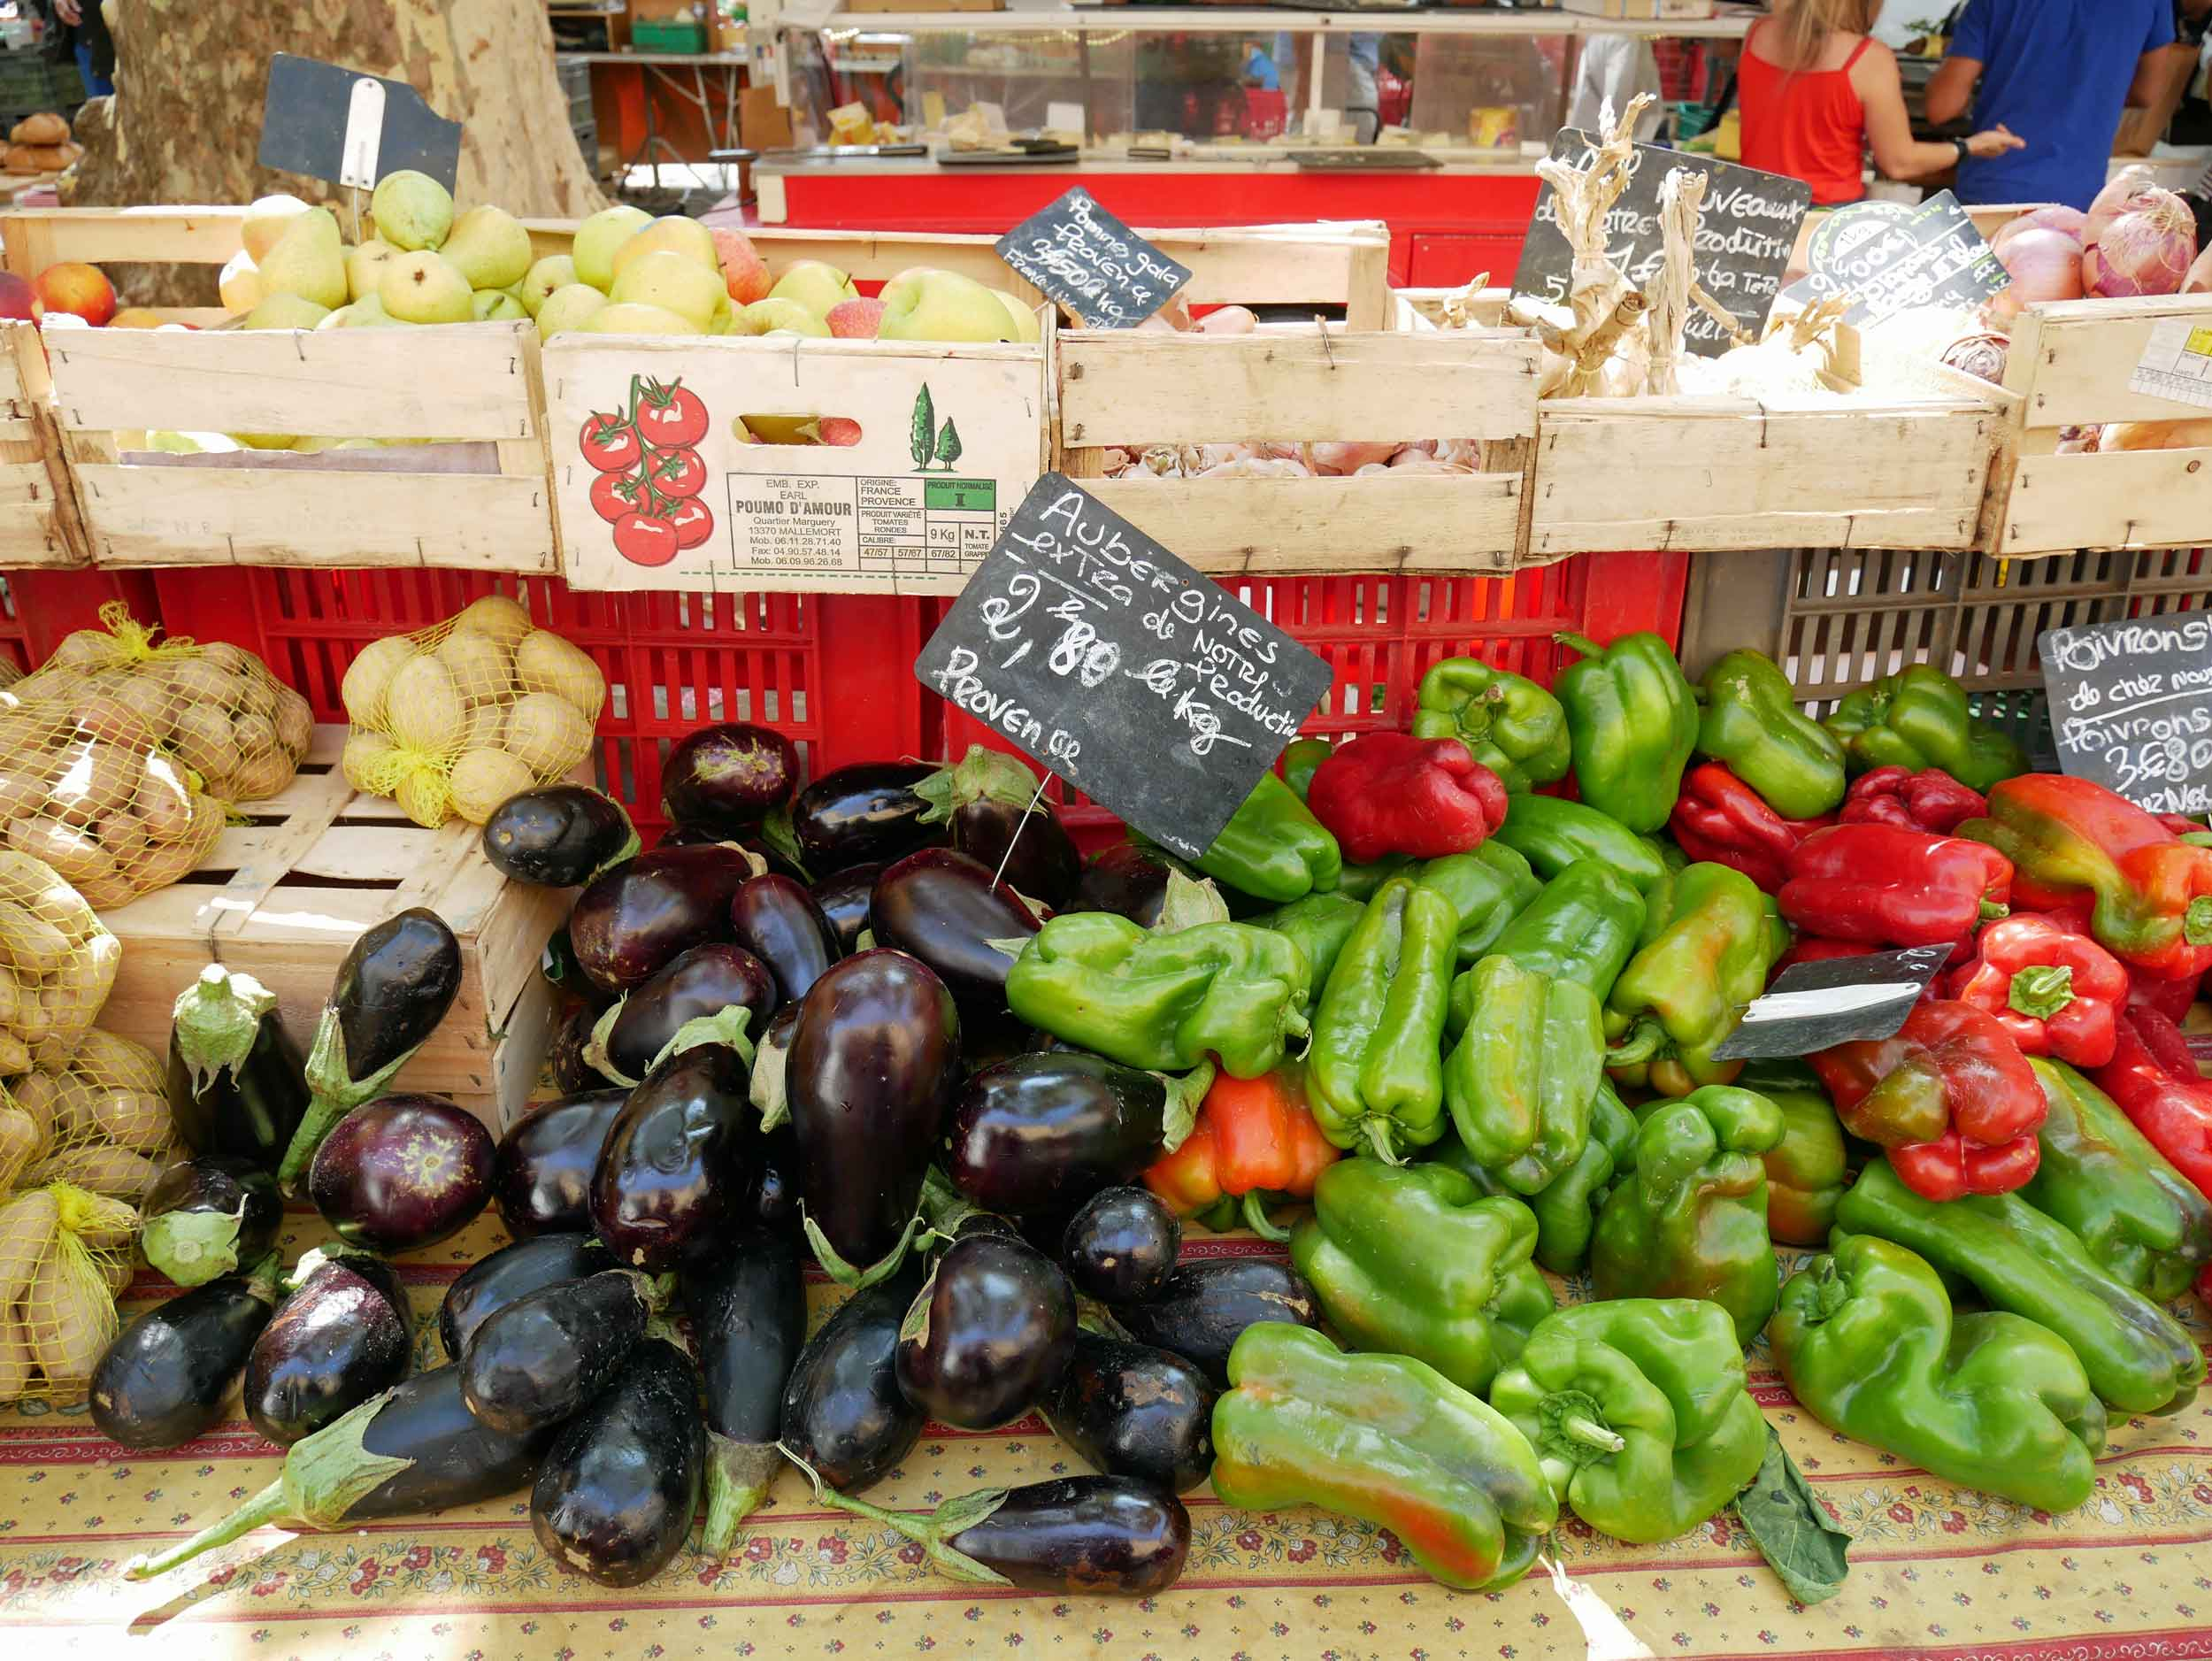 Every day is market day in Aix!We happened upon the fruit and vegetable farmer's market several times while in town.